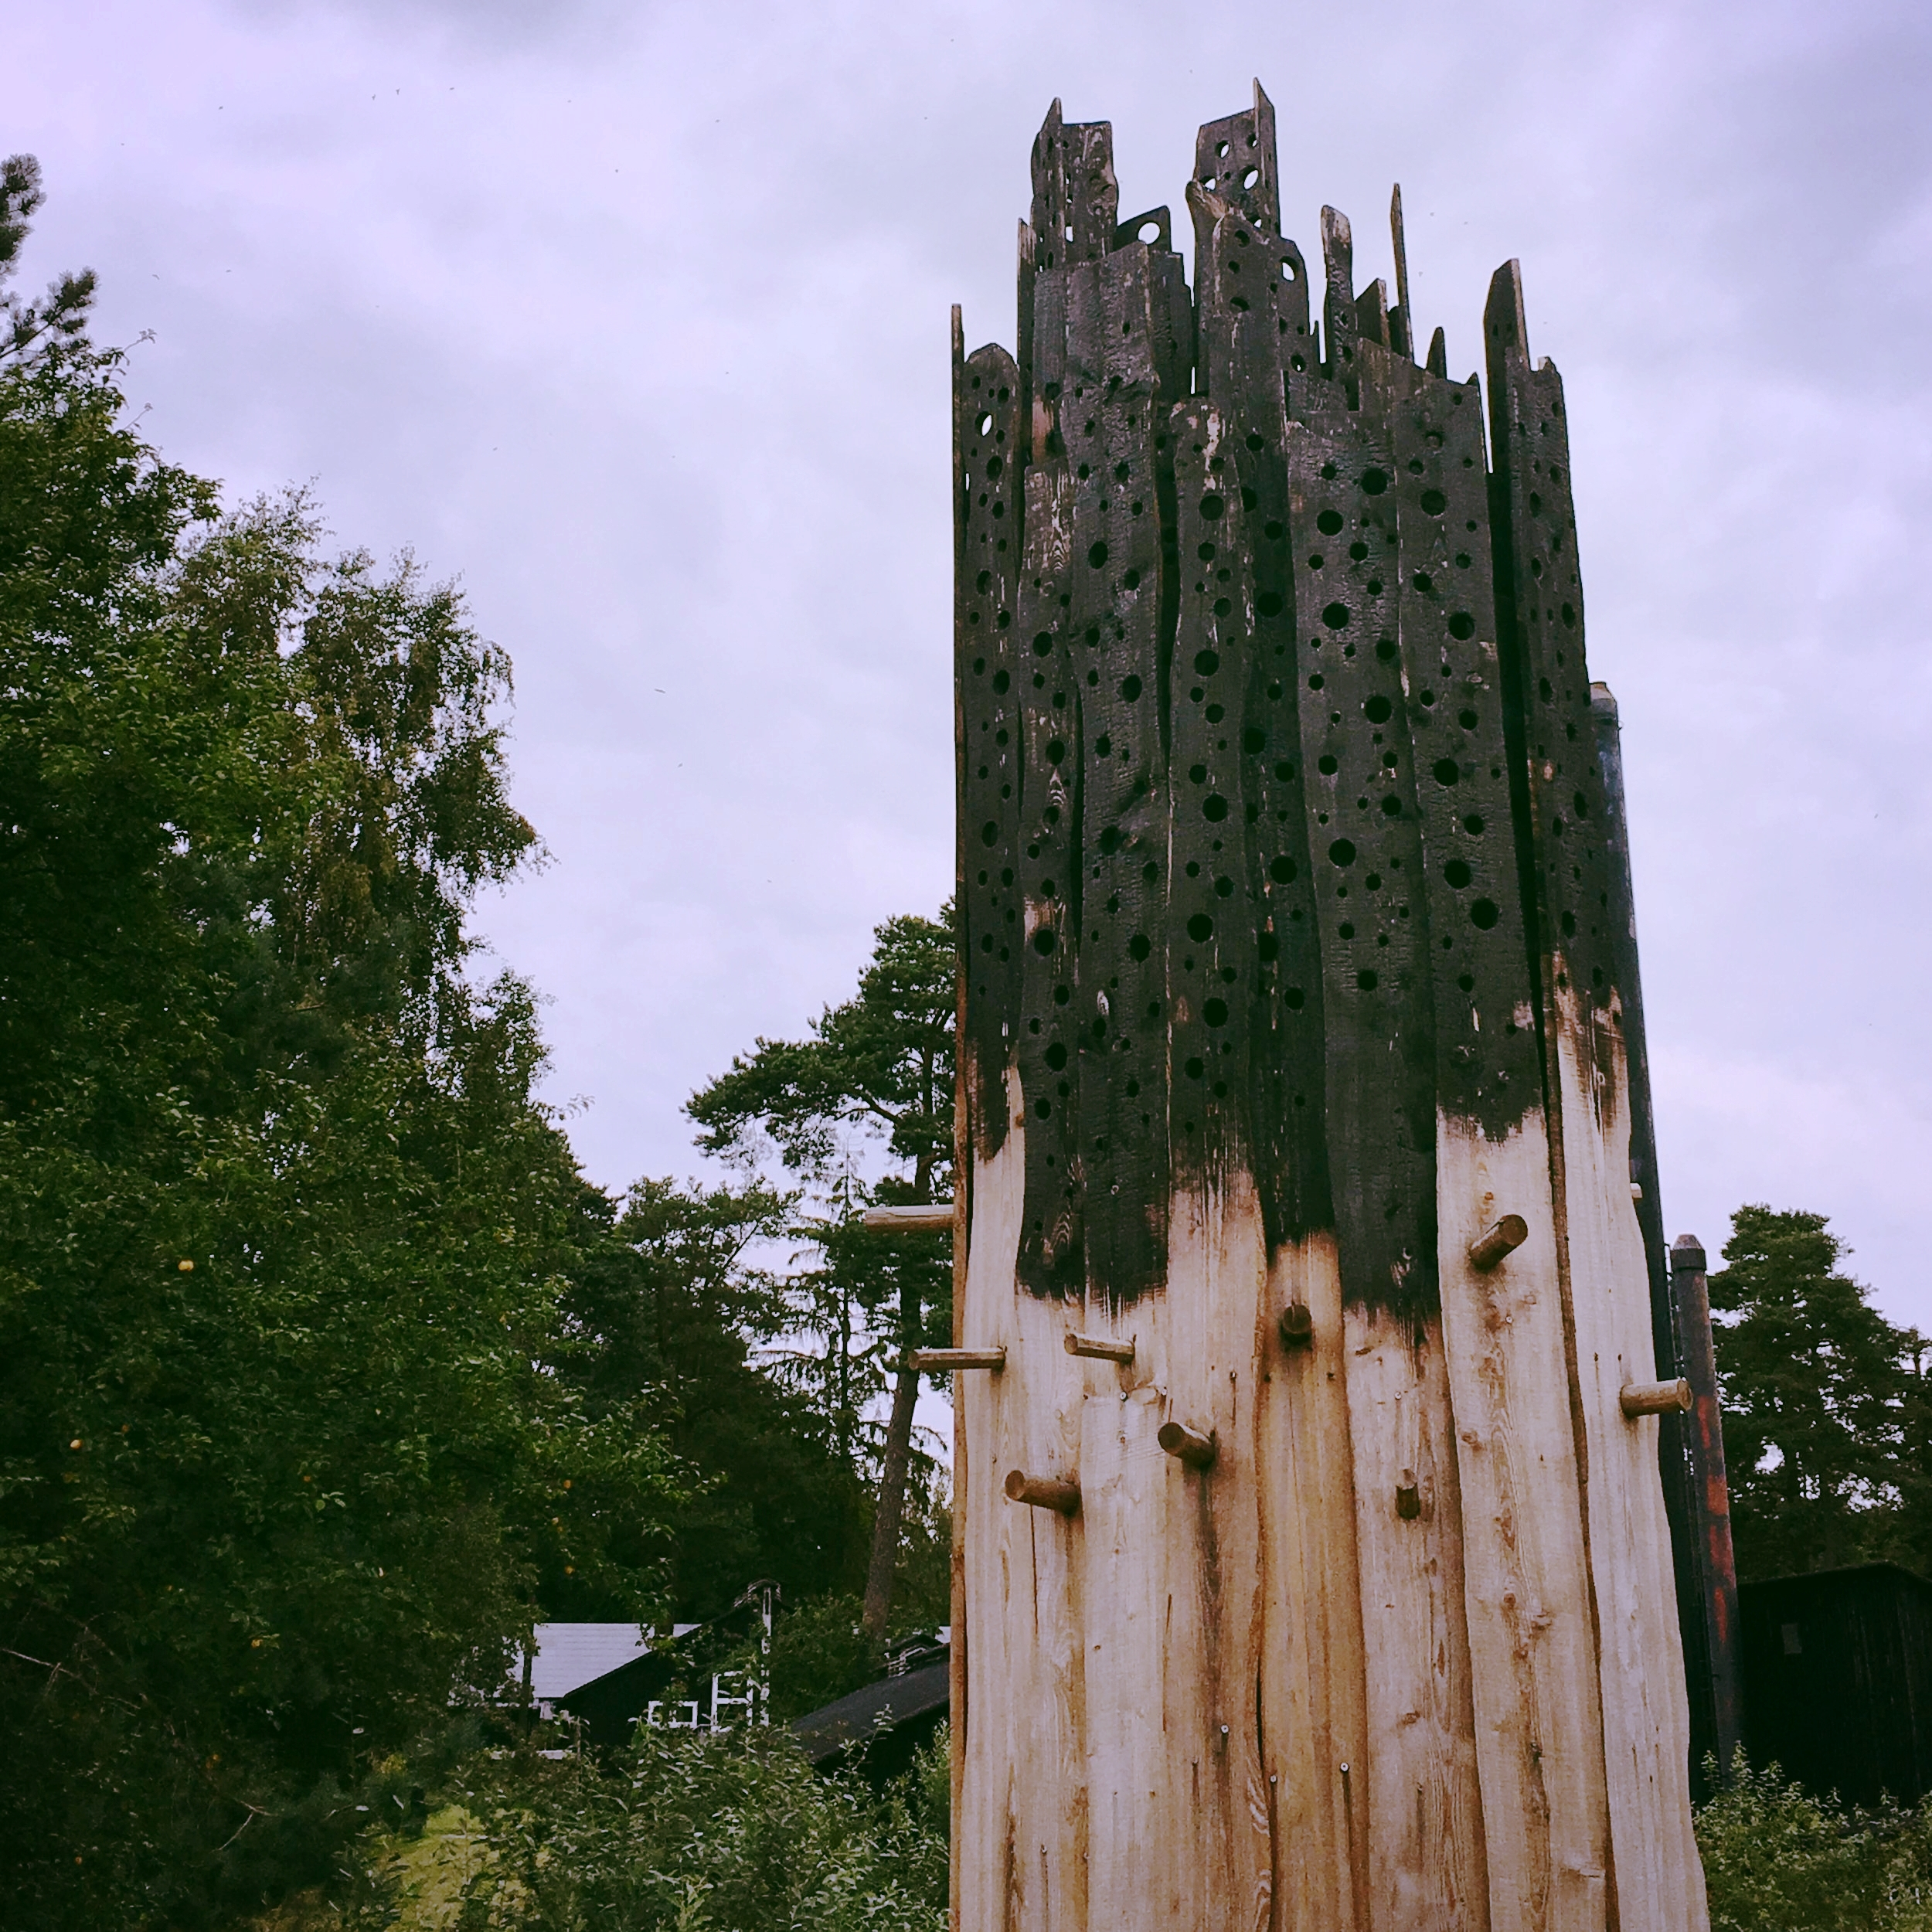 Forestry Sculpture